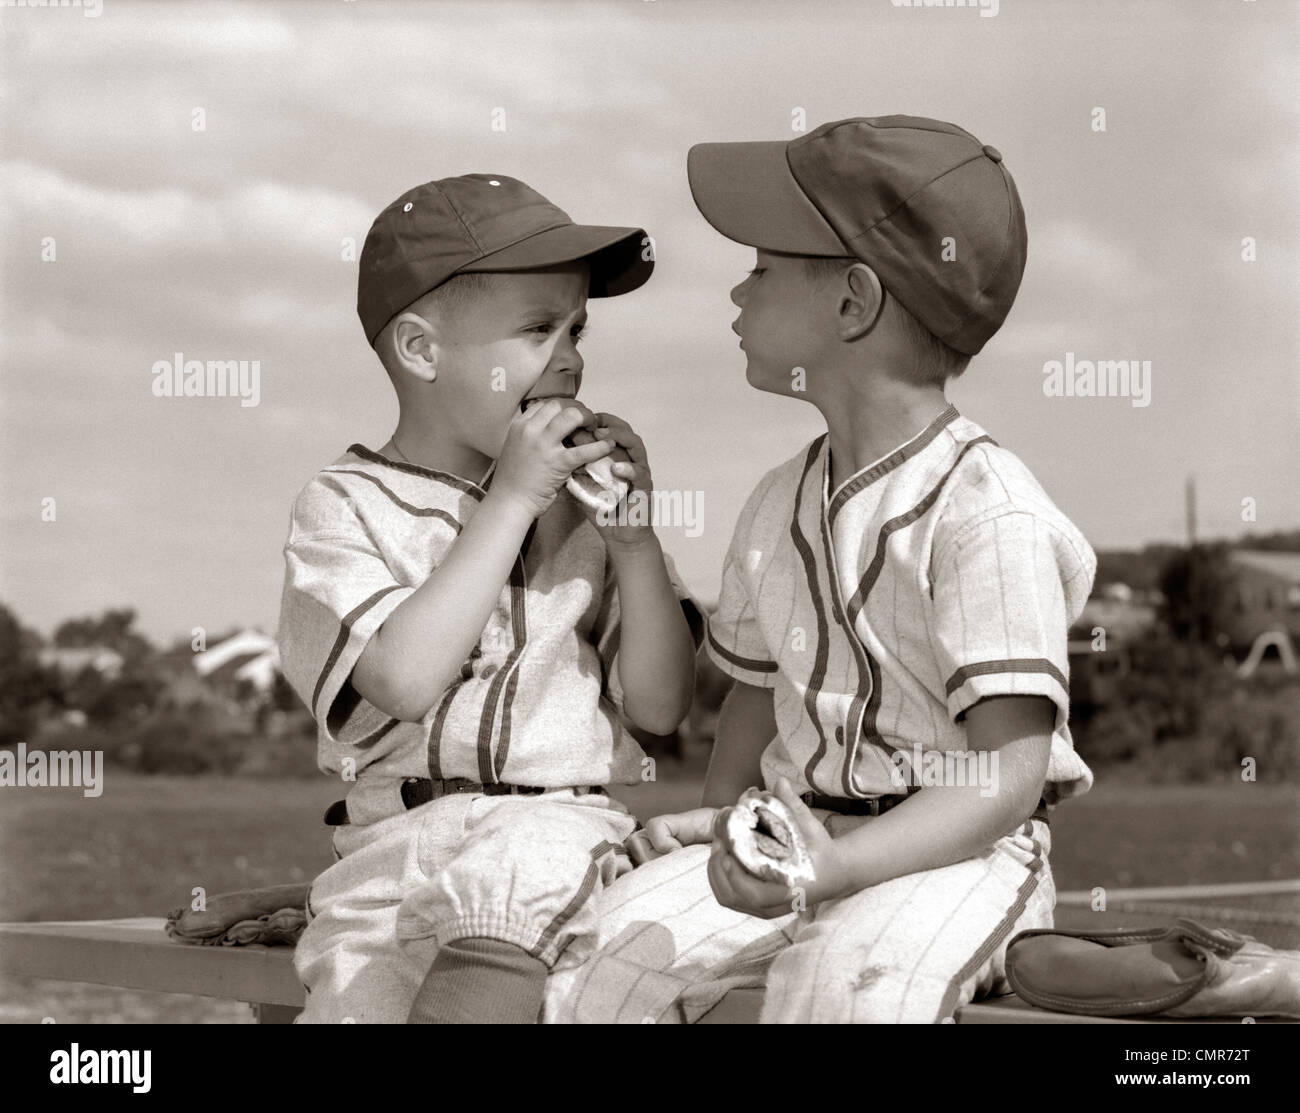 1960s Little League Baseball Boys In Caps And Uniforms ...